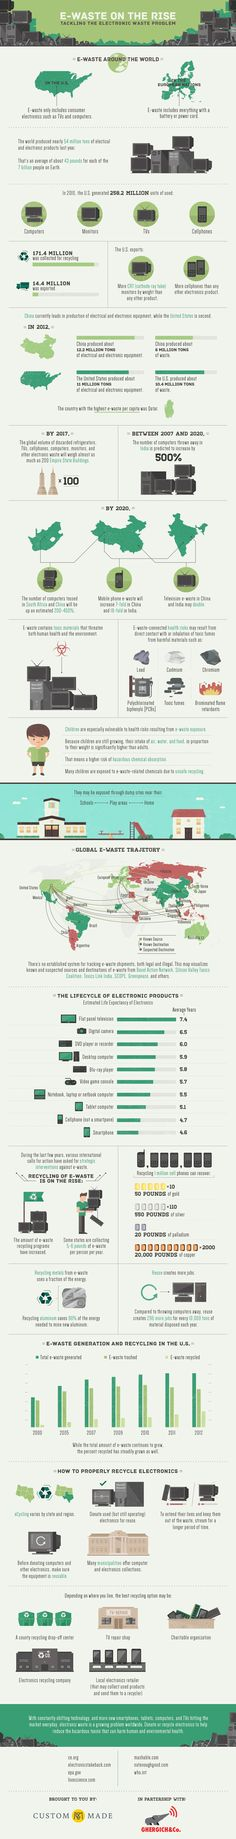 E-Waste on the Rise: Tackling the Electronic Waste Problem Infographic